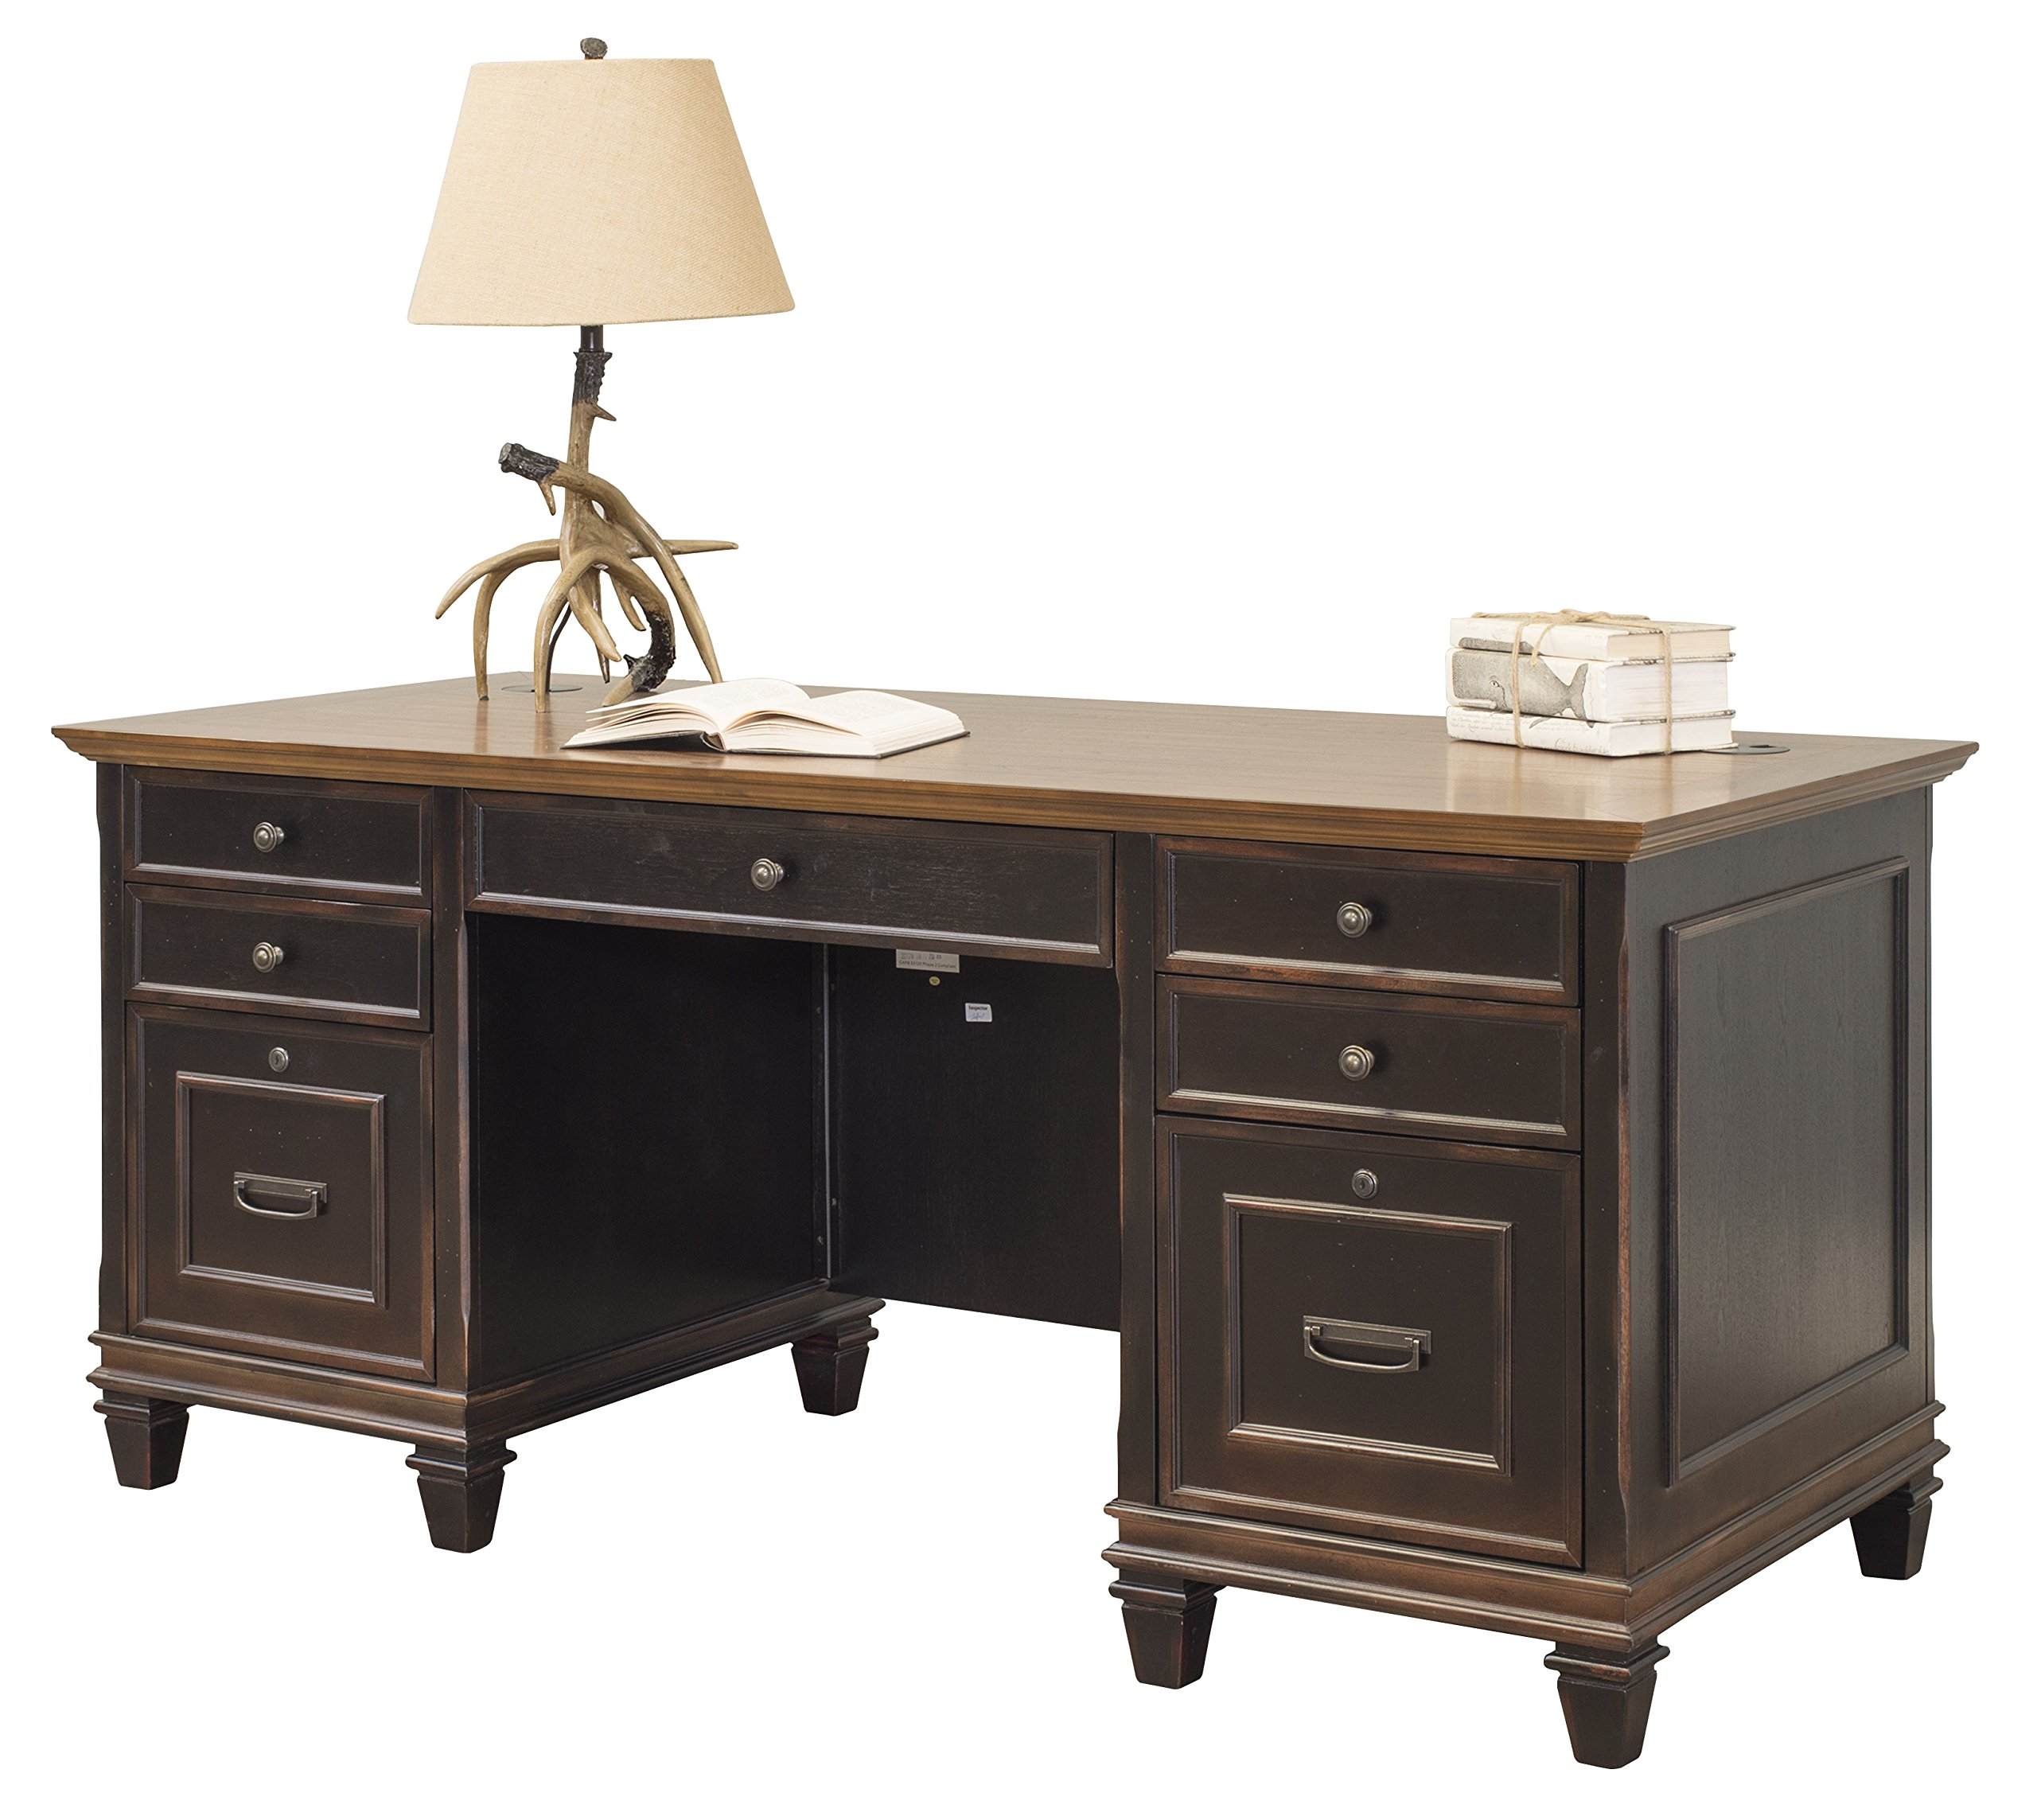 Martin Furniture Hartford Double Pedestal